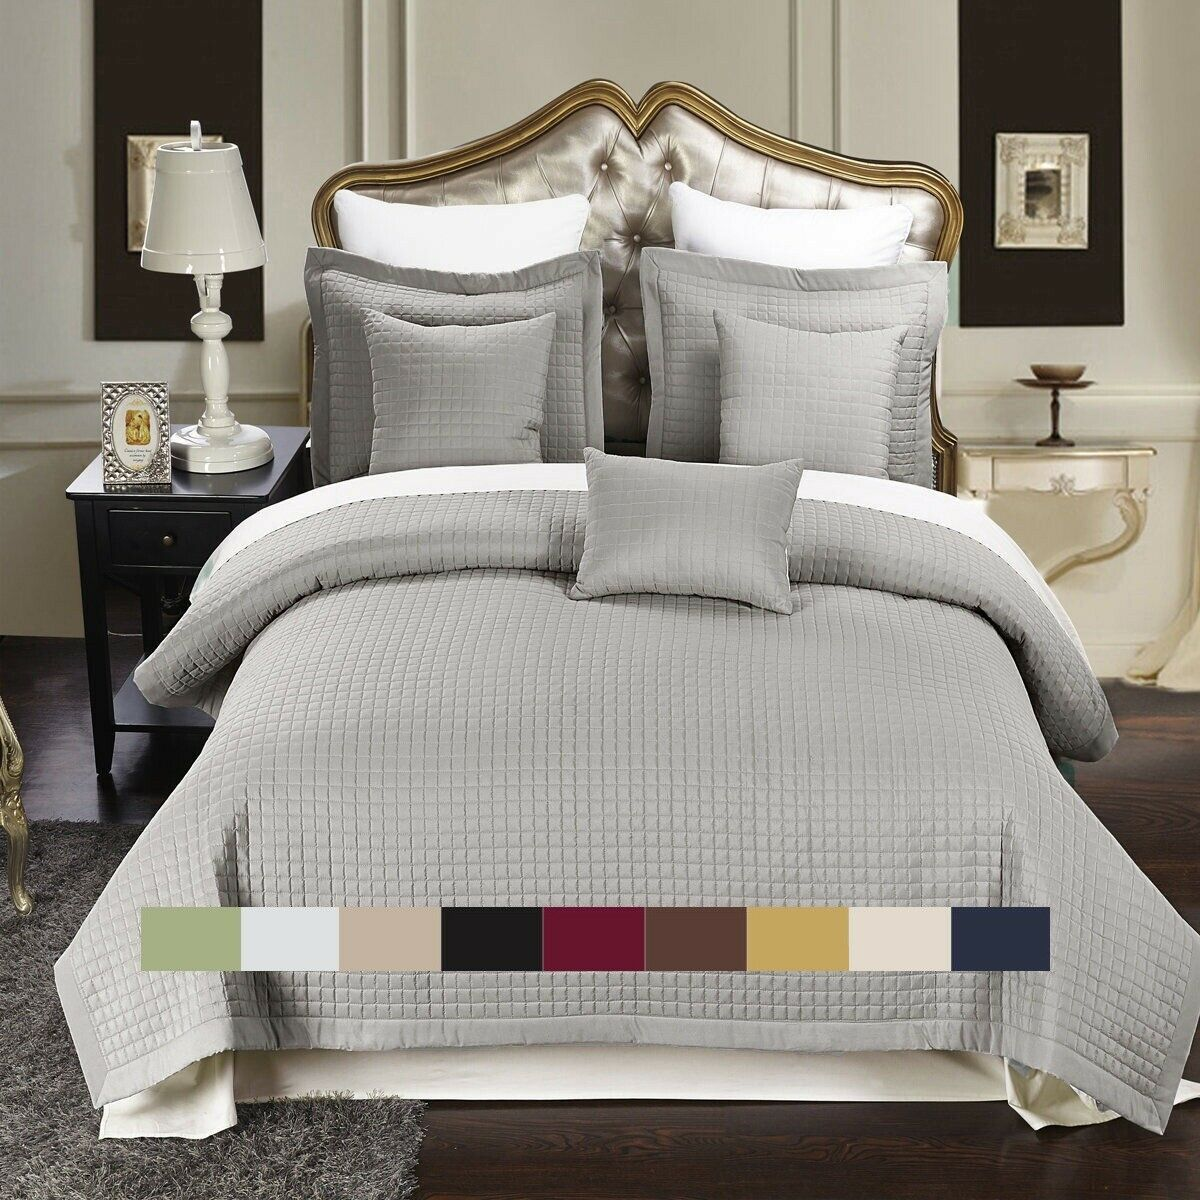 luxury checkered quilted wrinkle free coverlets bedspread